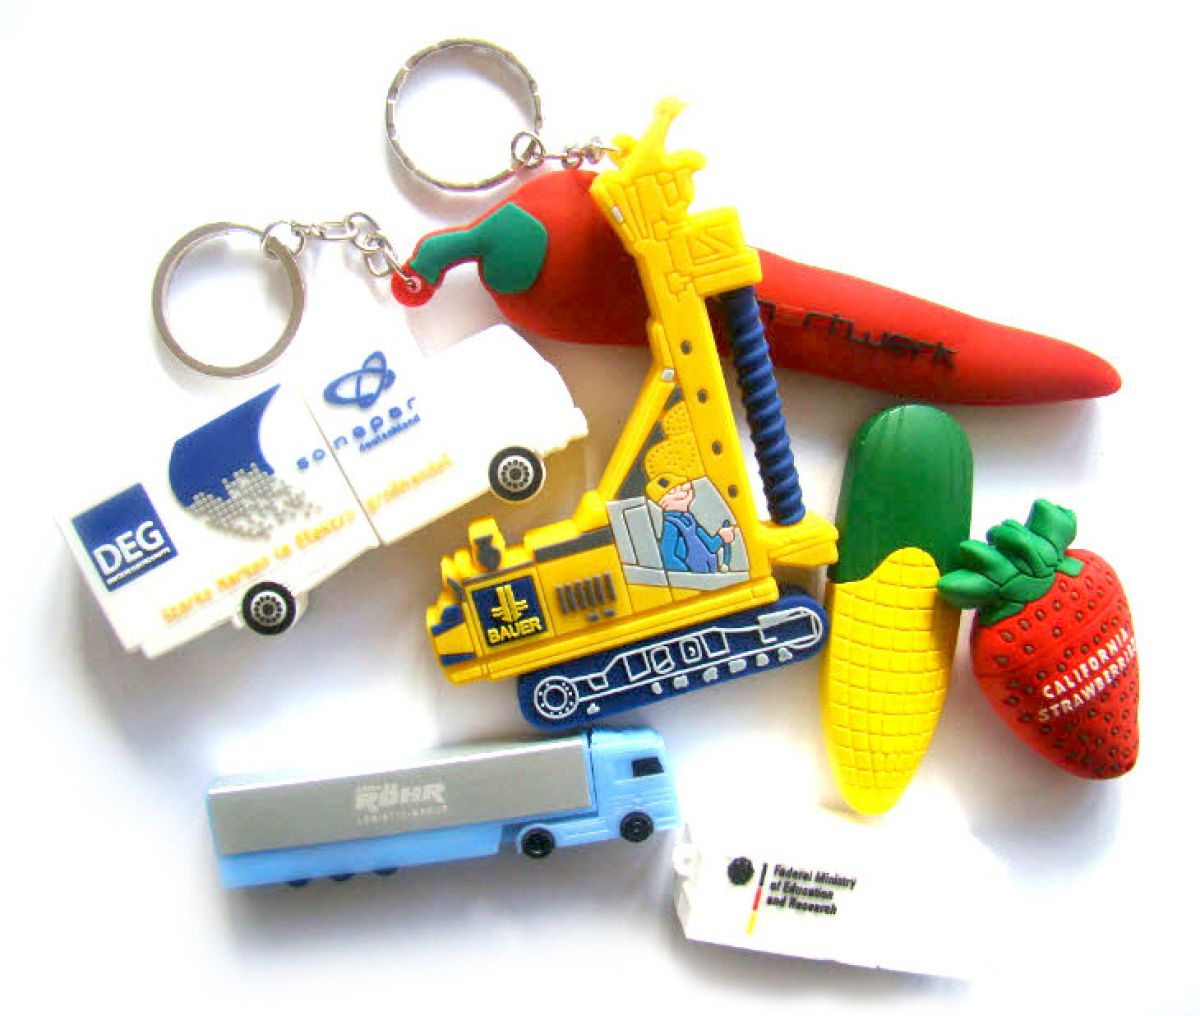 Collage von individuellen USB-Sticks - Sonderformen